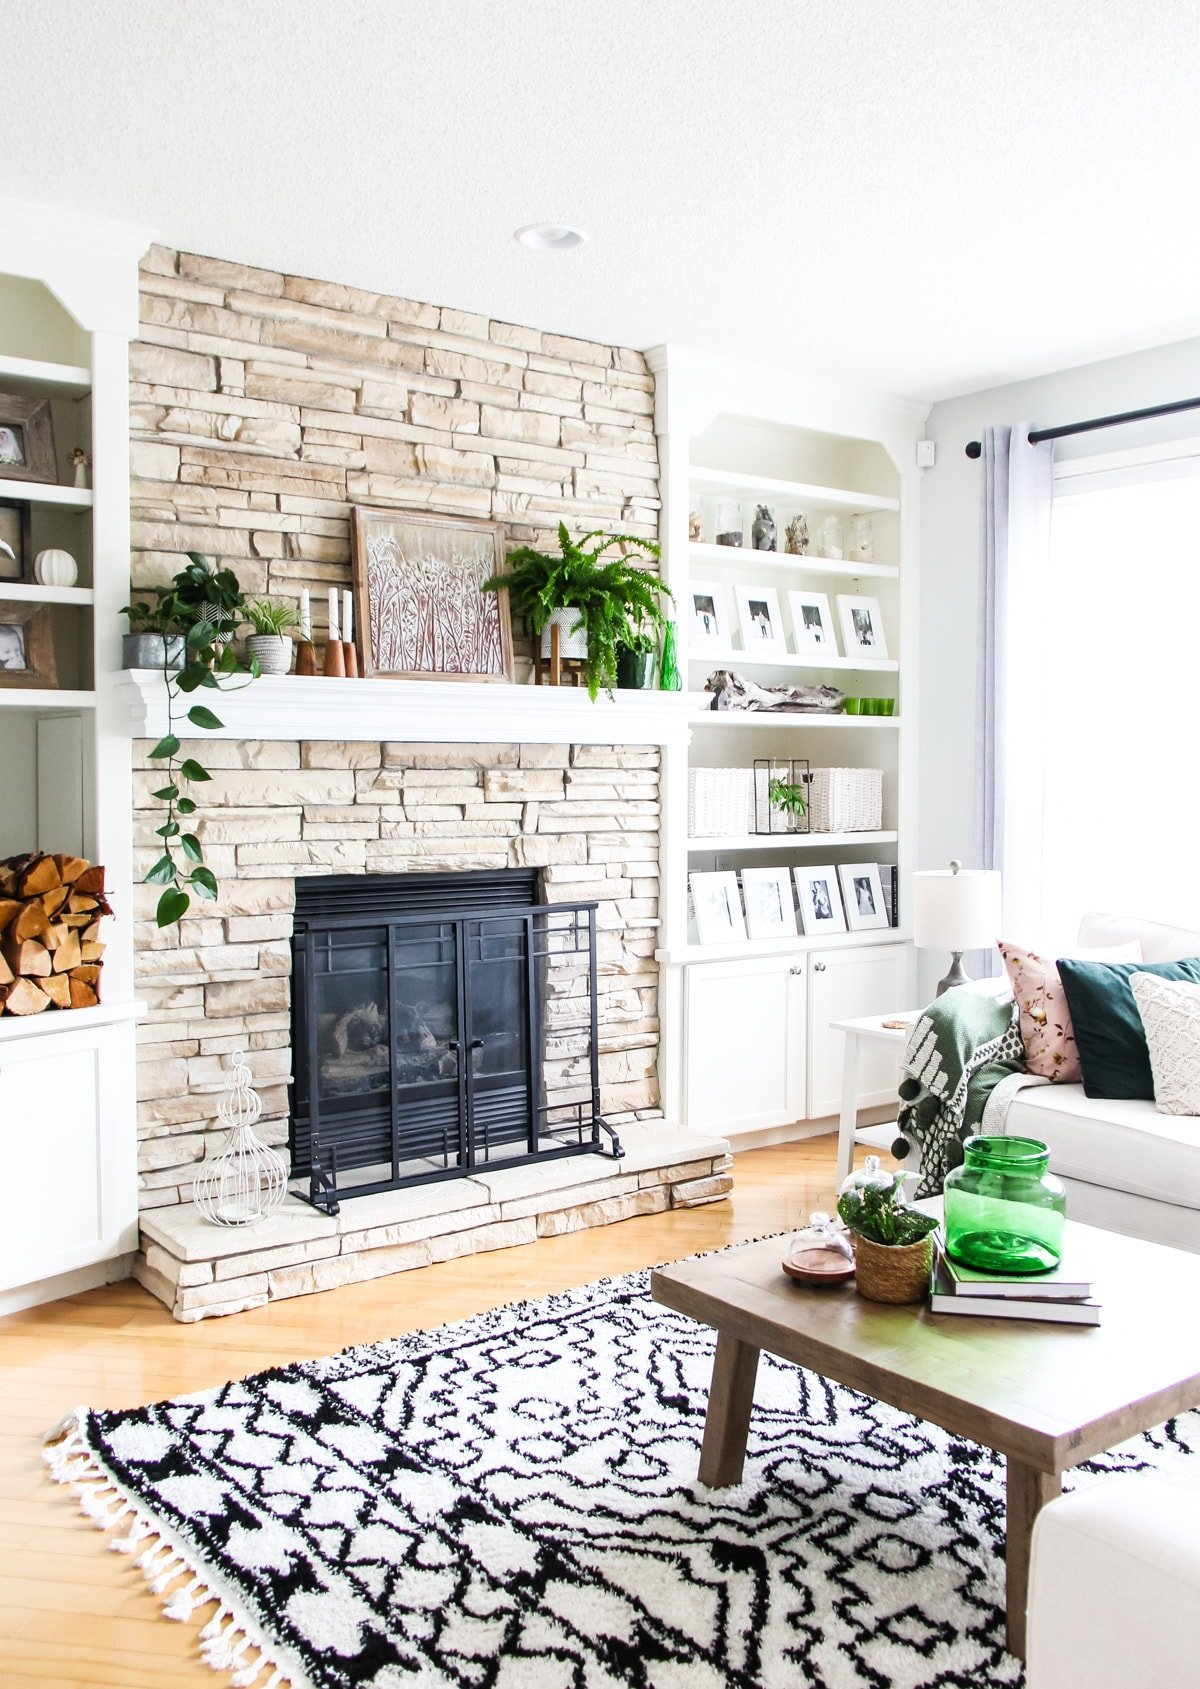 a side view of a light stone fireplace decorated with plants, candles and art. there are shelves filled with white framed pictures, baskets and pops of green. in the foreground is a wooden coffee table on a black and white rug